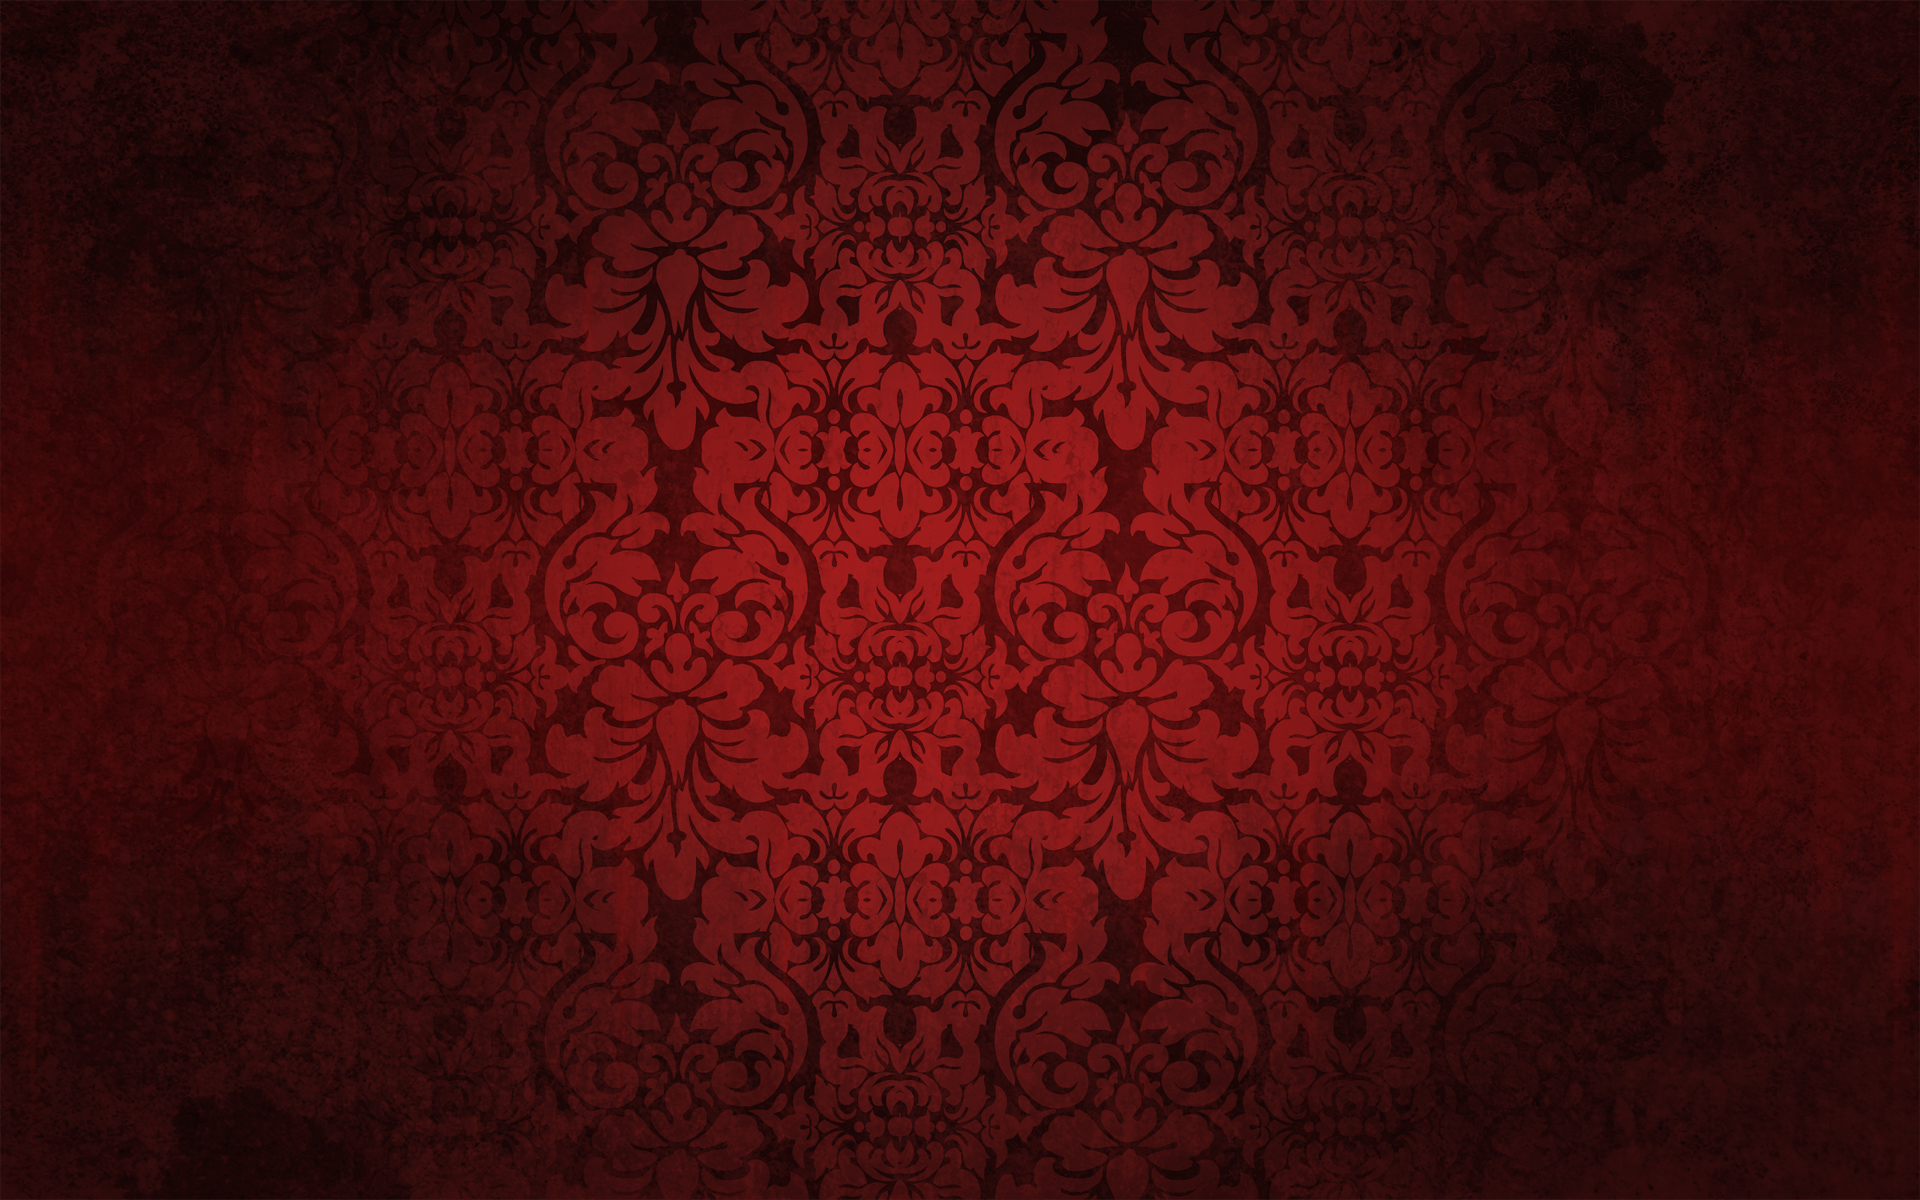 Black Velvet Damask Wallpaper 10 Vintage Red Backgrounds Hq Backgrounds Freecreatives